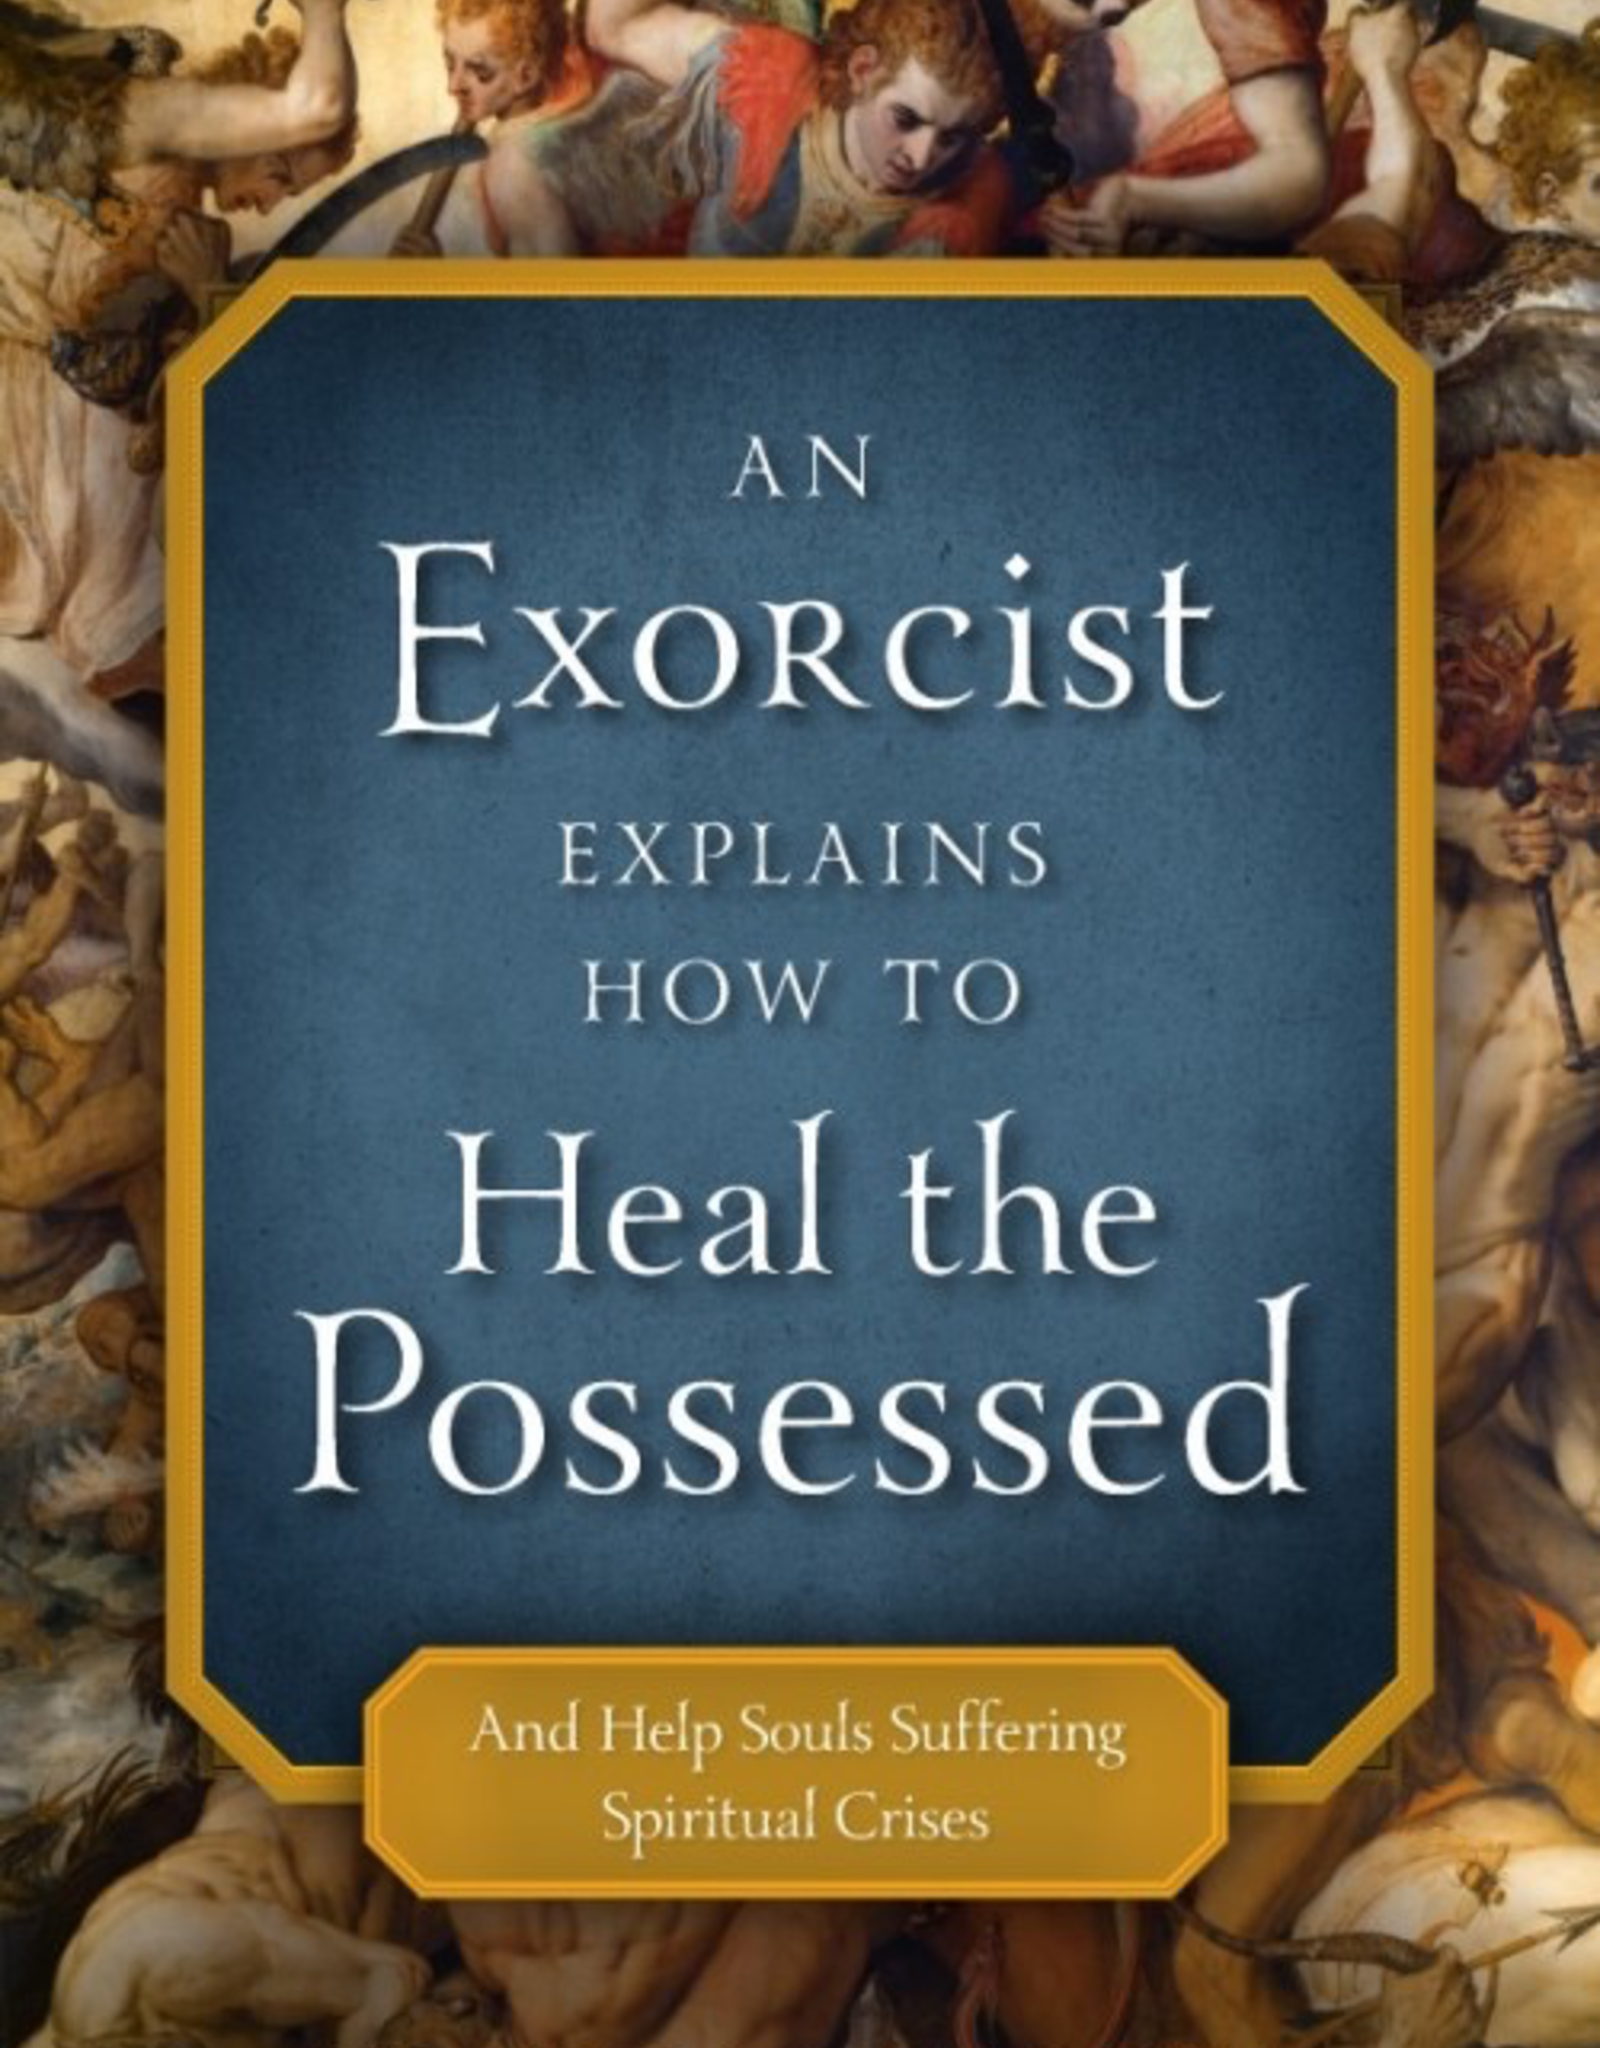 Sophia Institute An Exorcist Explains How to Heal the Possessed and Help Souls Suffering Spiritual Crisis, by Fr. Paolo Carlin (paperback)